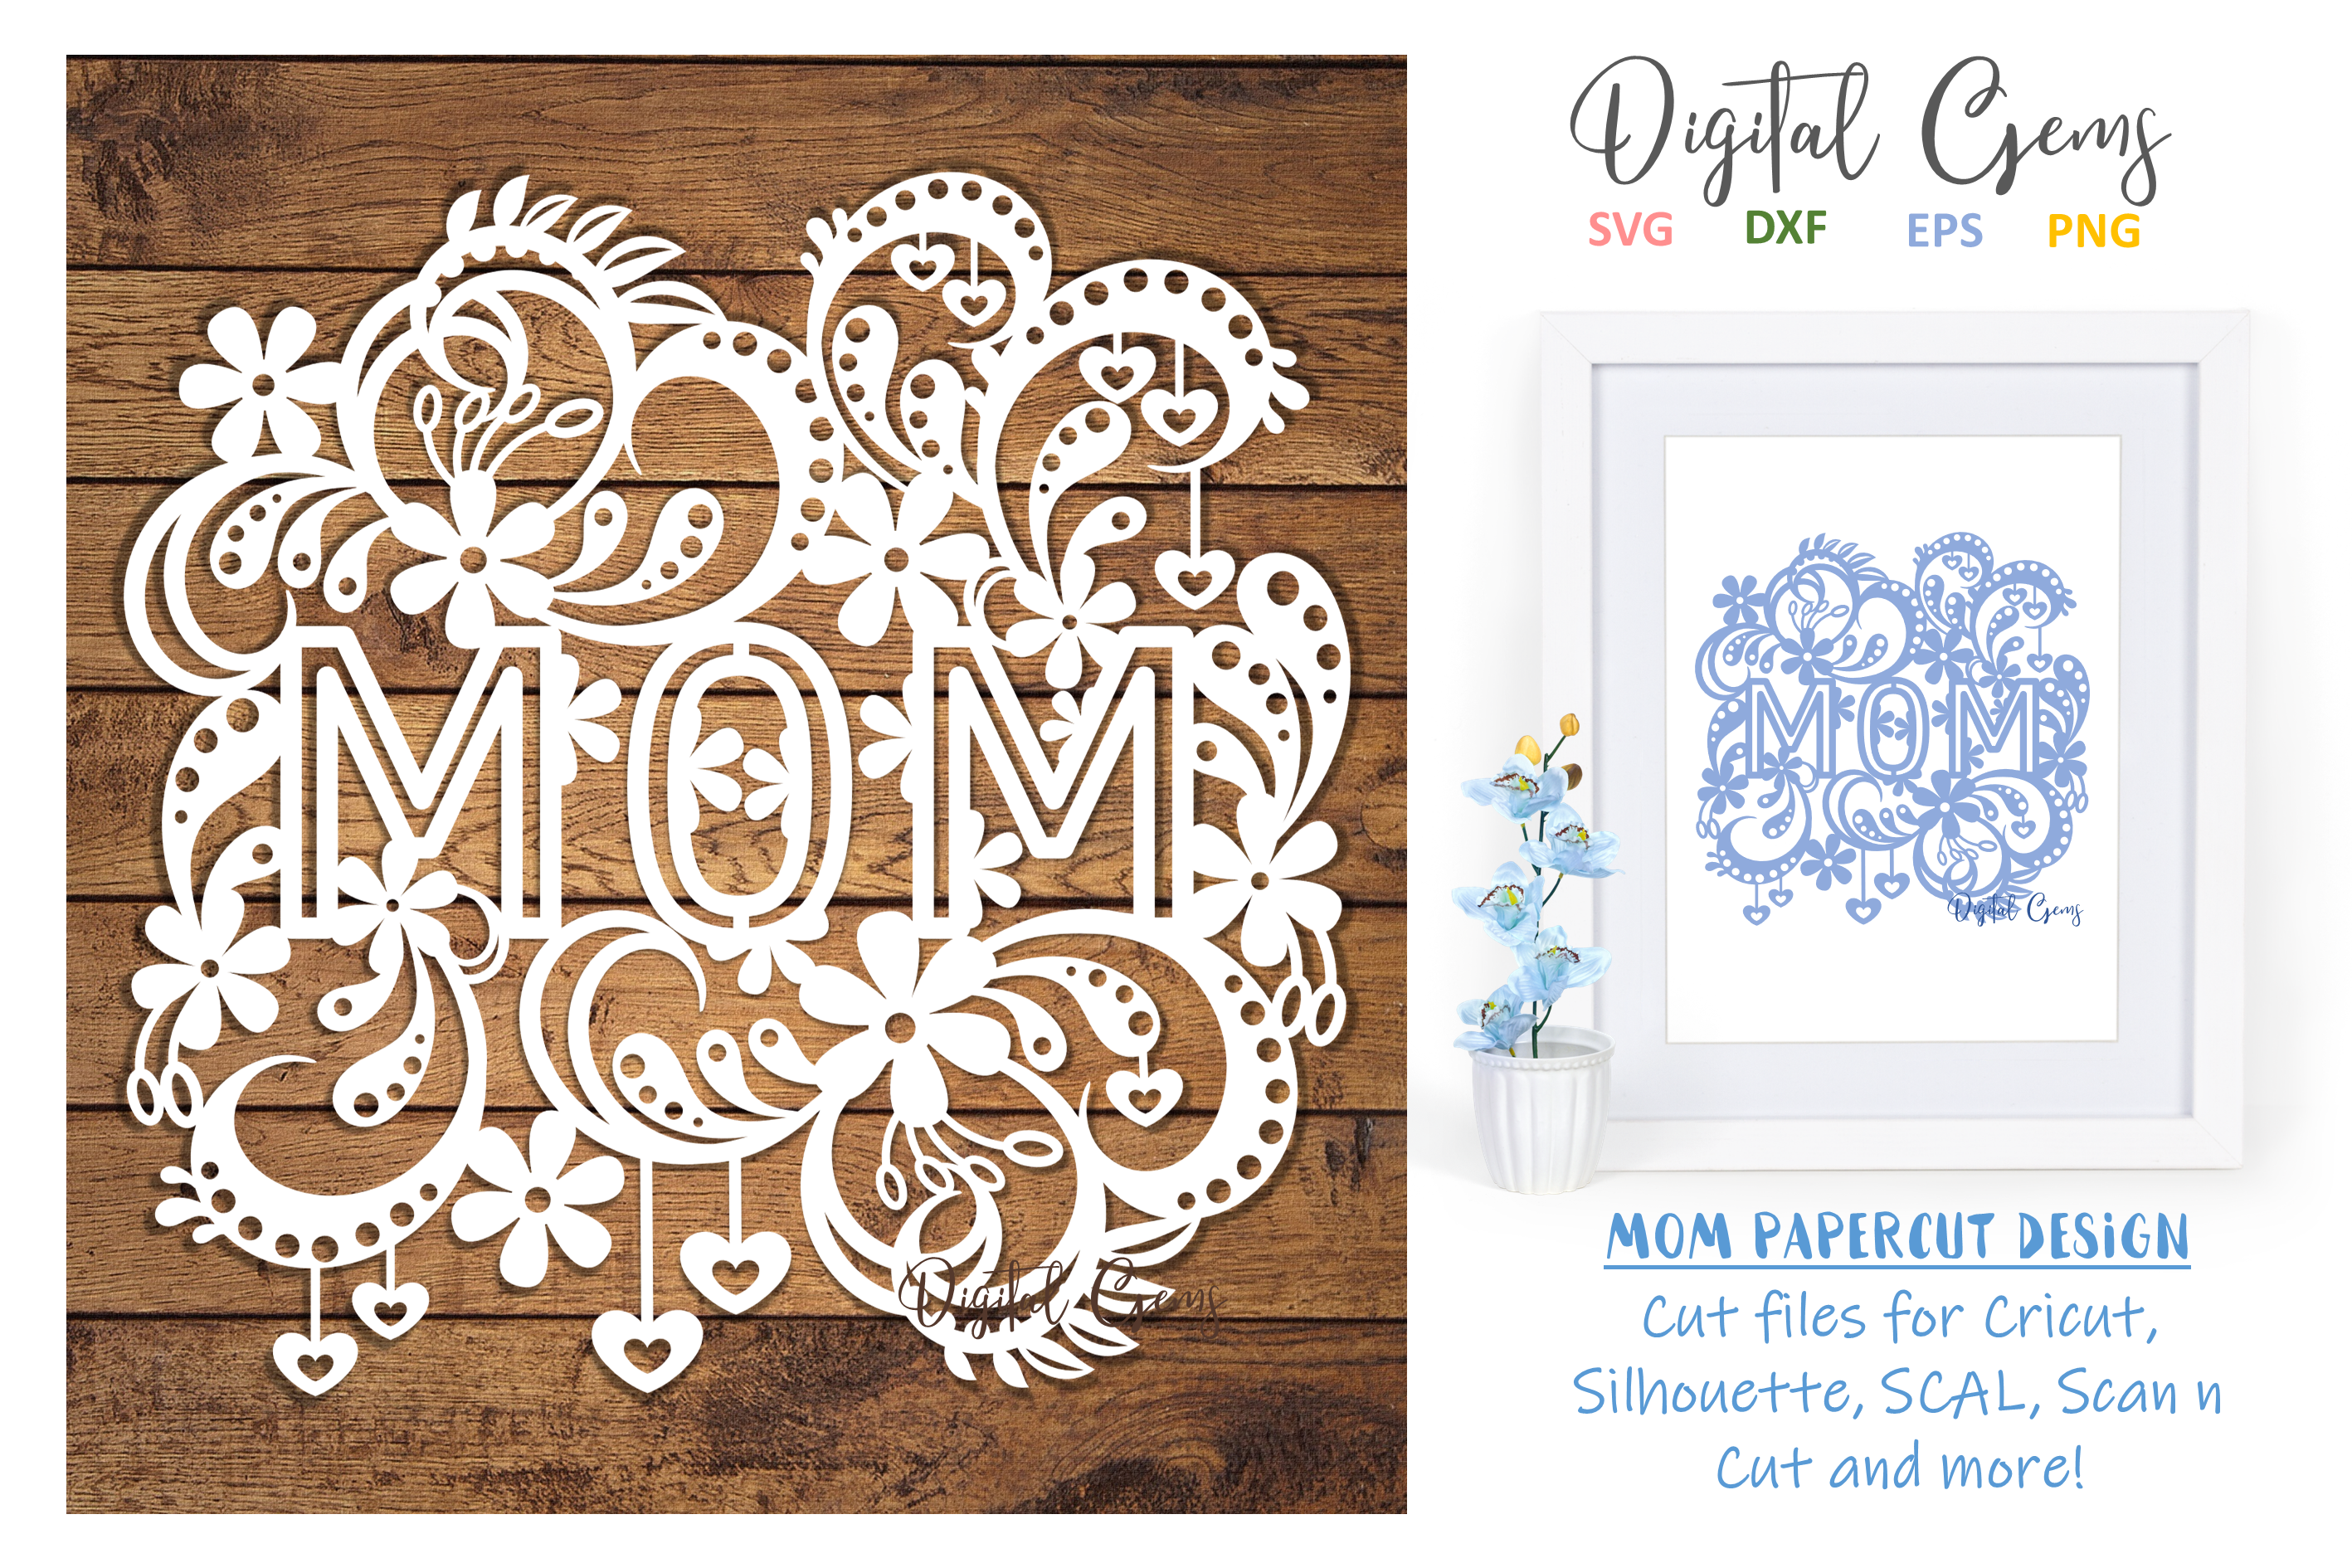 Mom paper cut design SVG / DXF / EPS files example image 1